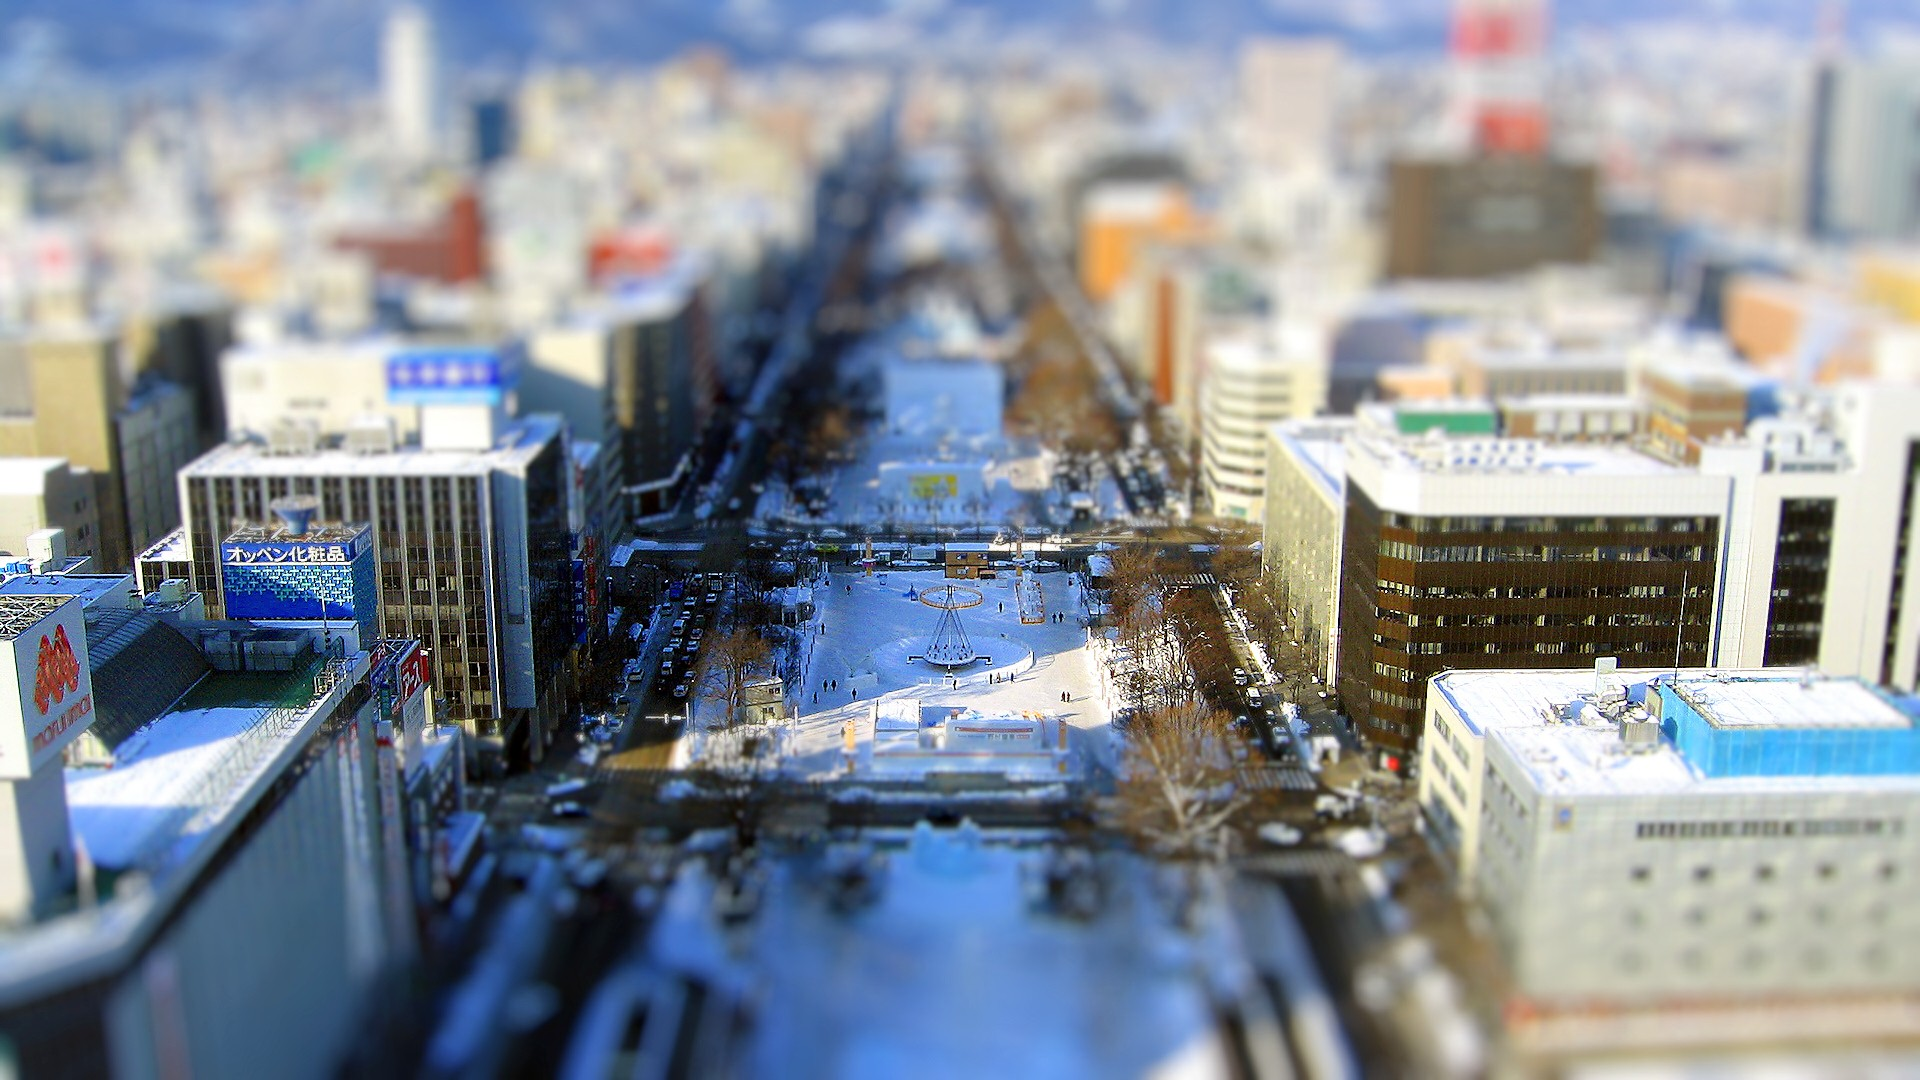 miniature-Faking-Photography-Tilt-Shift-miniature-faking-1920x1080-wallpaper-wp3808270